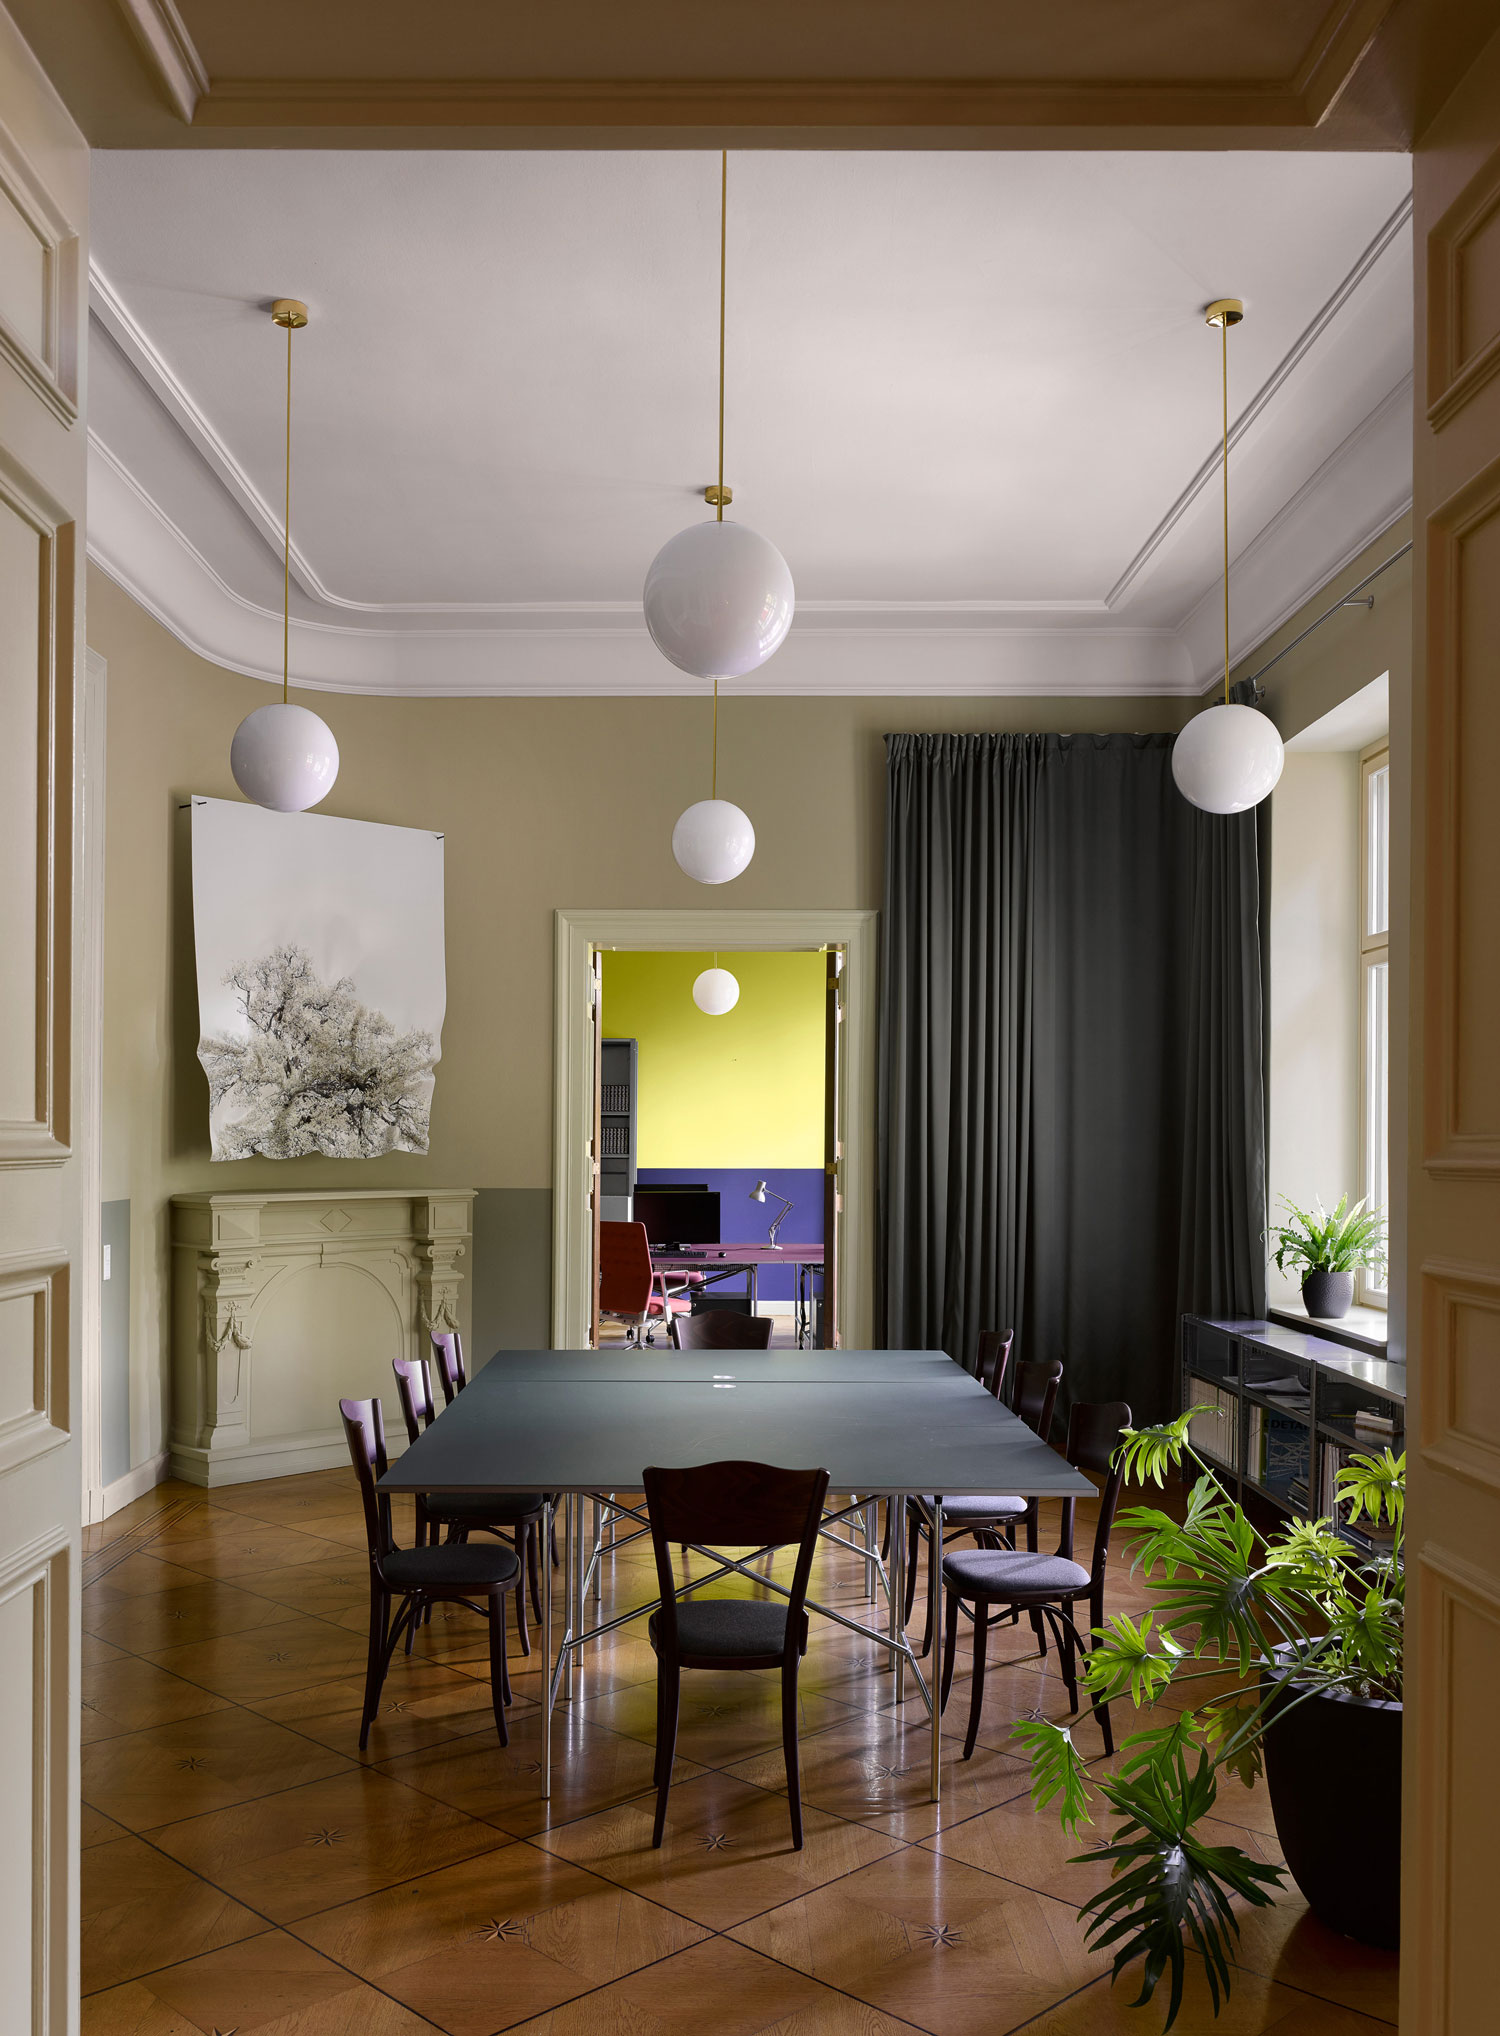 Grand C19th Palais Berlin Reimagined Office By David Kohn Architects Yellowtrace 05a